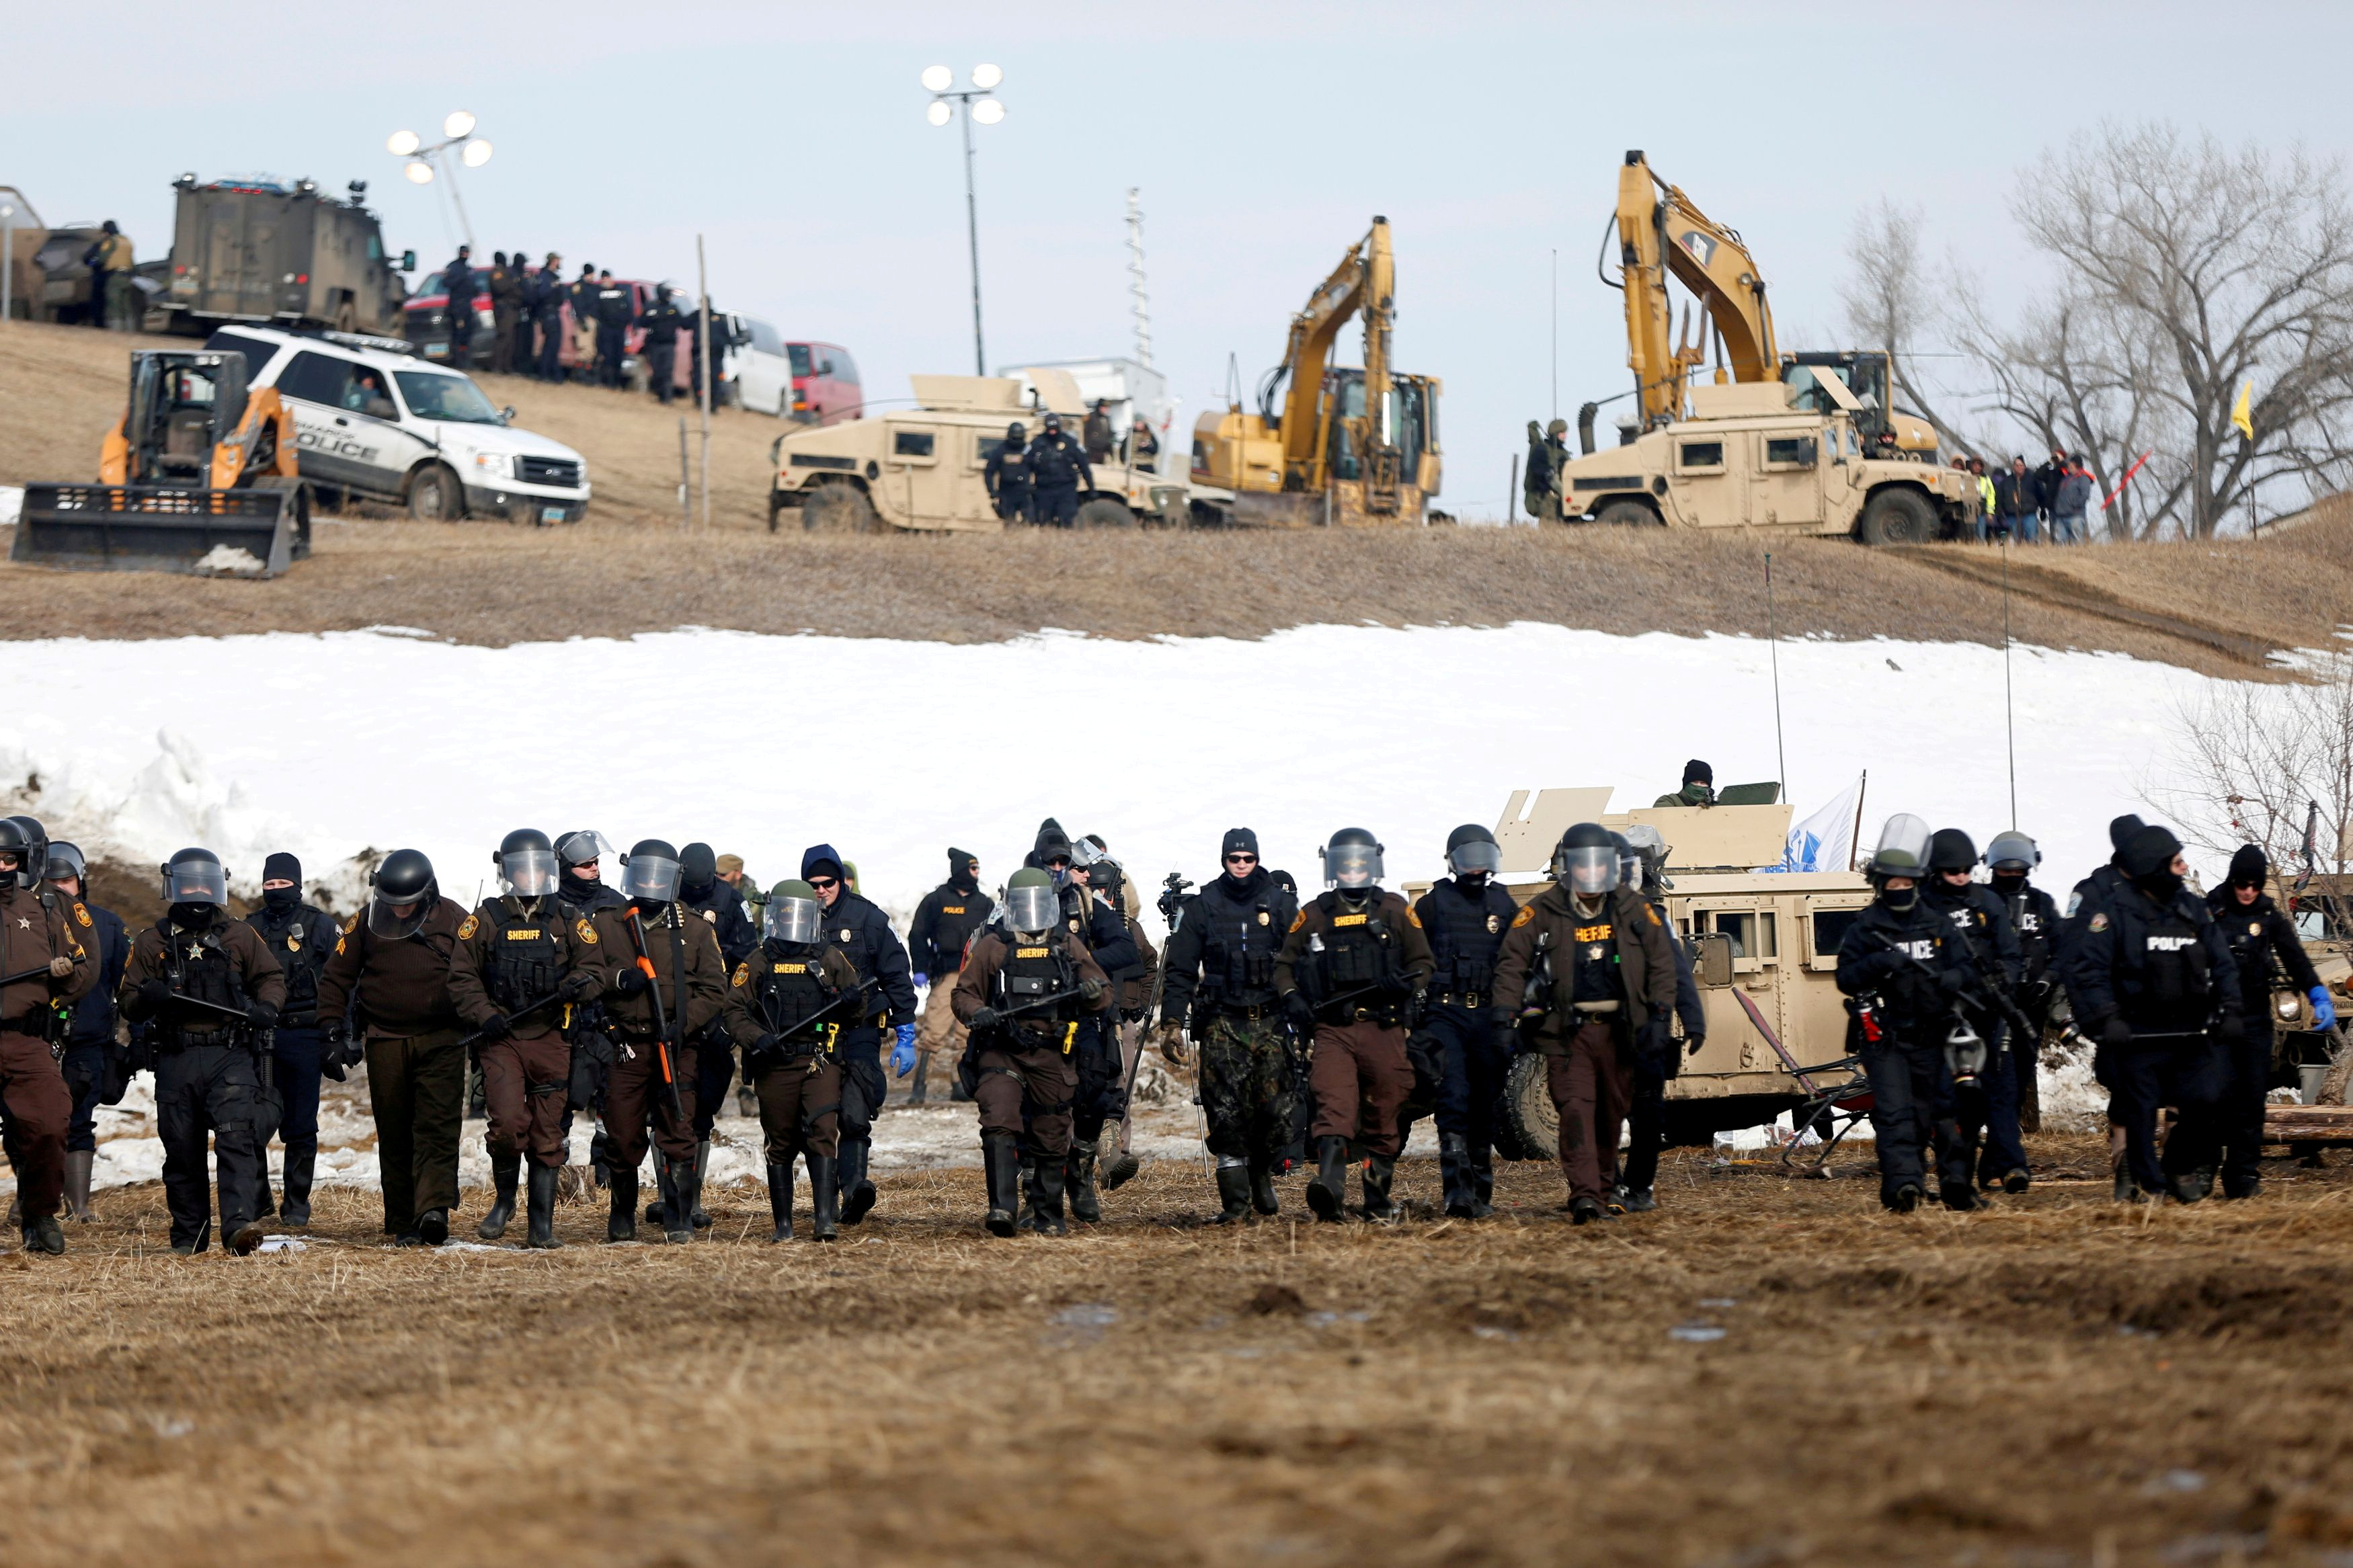 Law enforcement officers advance into the main opposition camp against the Dakota Access oil pipeline near Cannon Ball, North Dakota, U.S., February 23, 2017. REUTERS/Terray Sylvester/File Photo